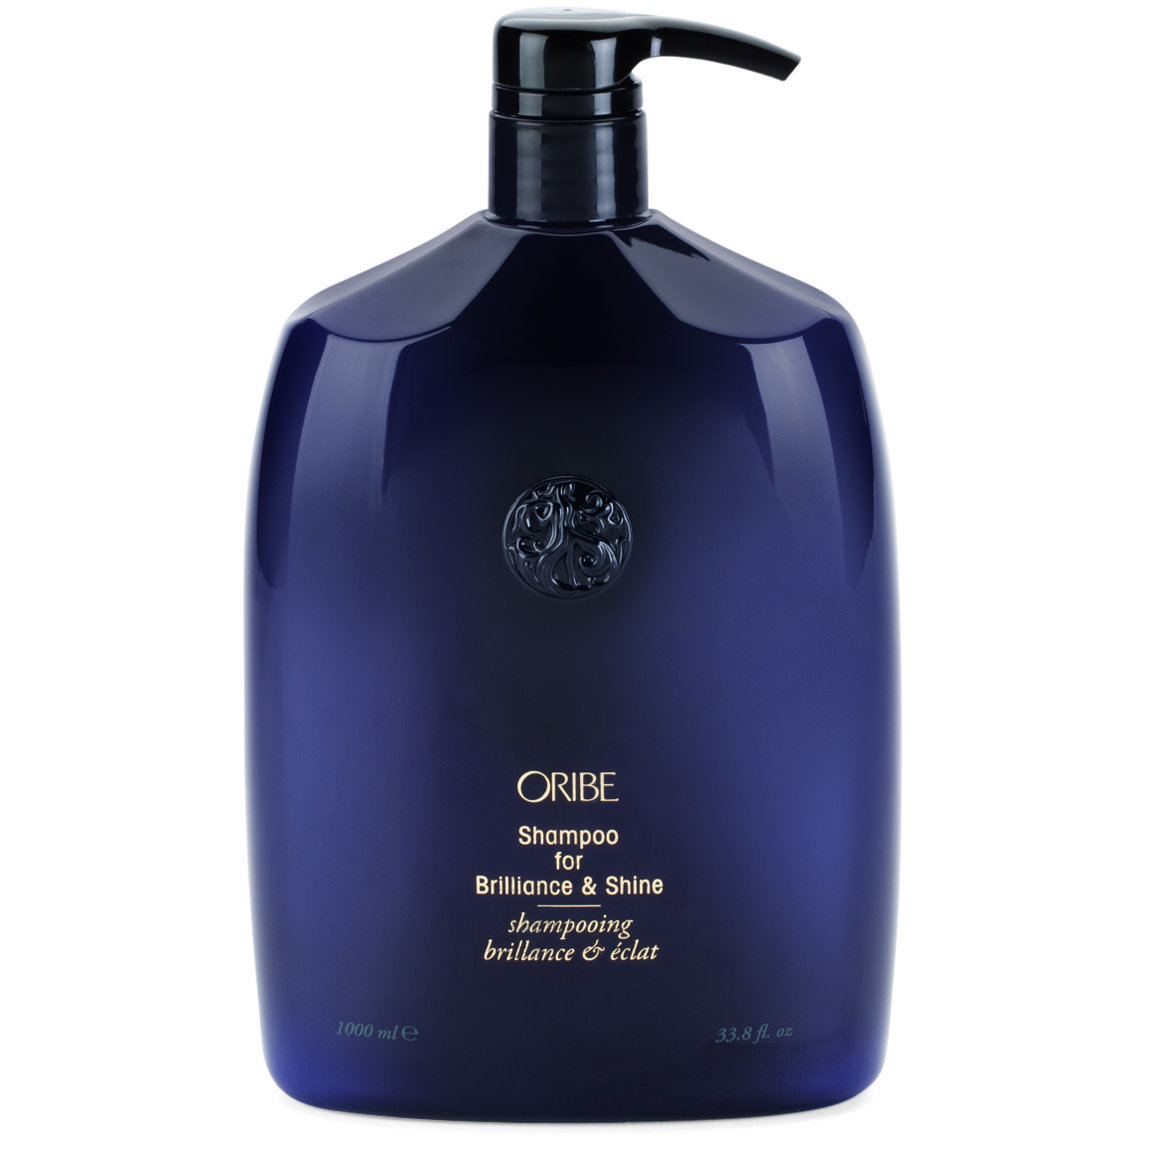 Oribe Shampoo for Brilliance & Shine 1 L product smear.